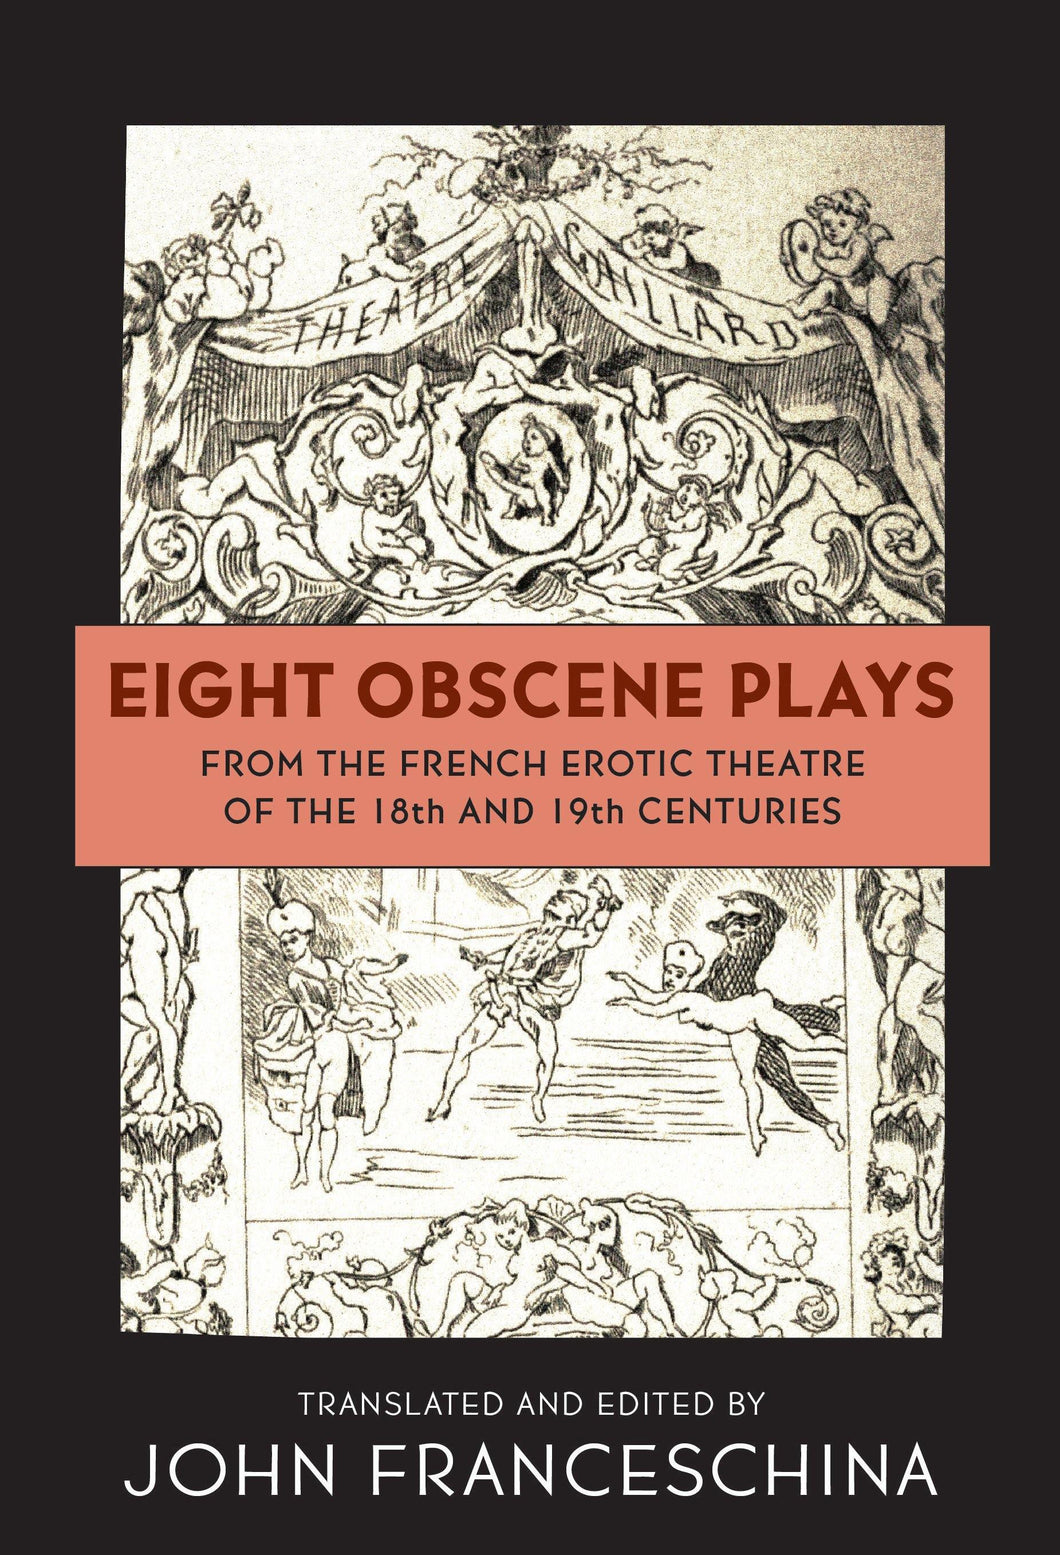 Eight Obscene Plays from the French Erotic Theatre of the 18th and 19th Centuries (hardback)